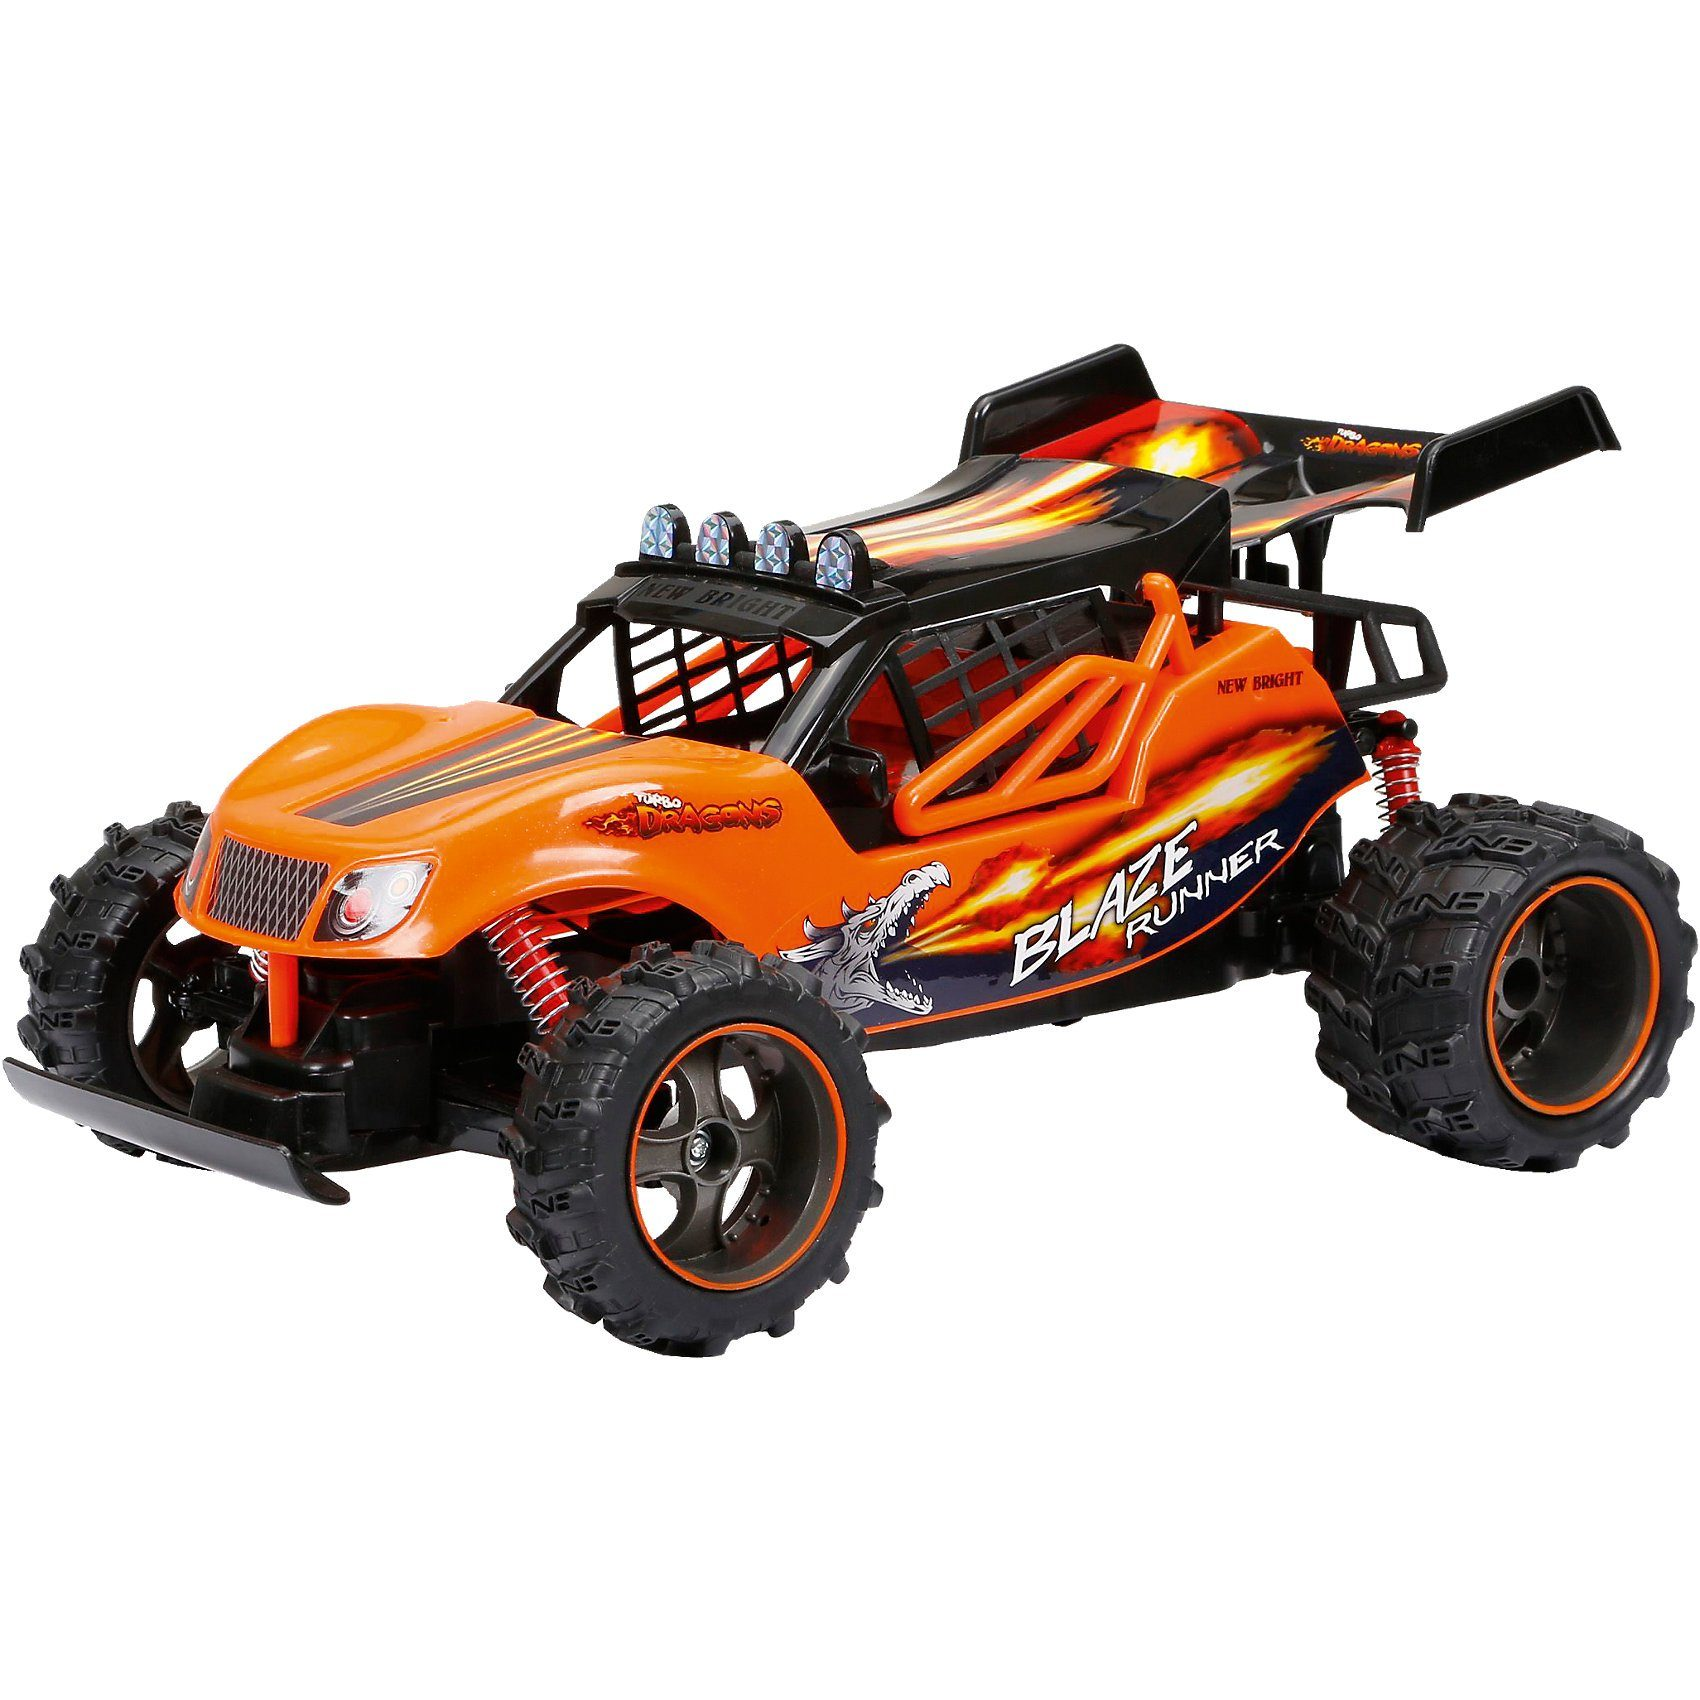 New Bright RC Fahrzeug Turbo Dragon Buggy 1:14